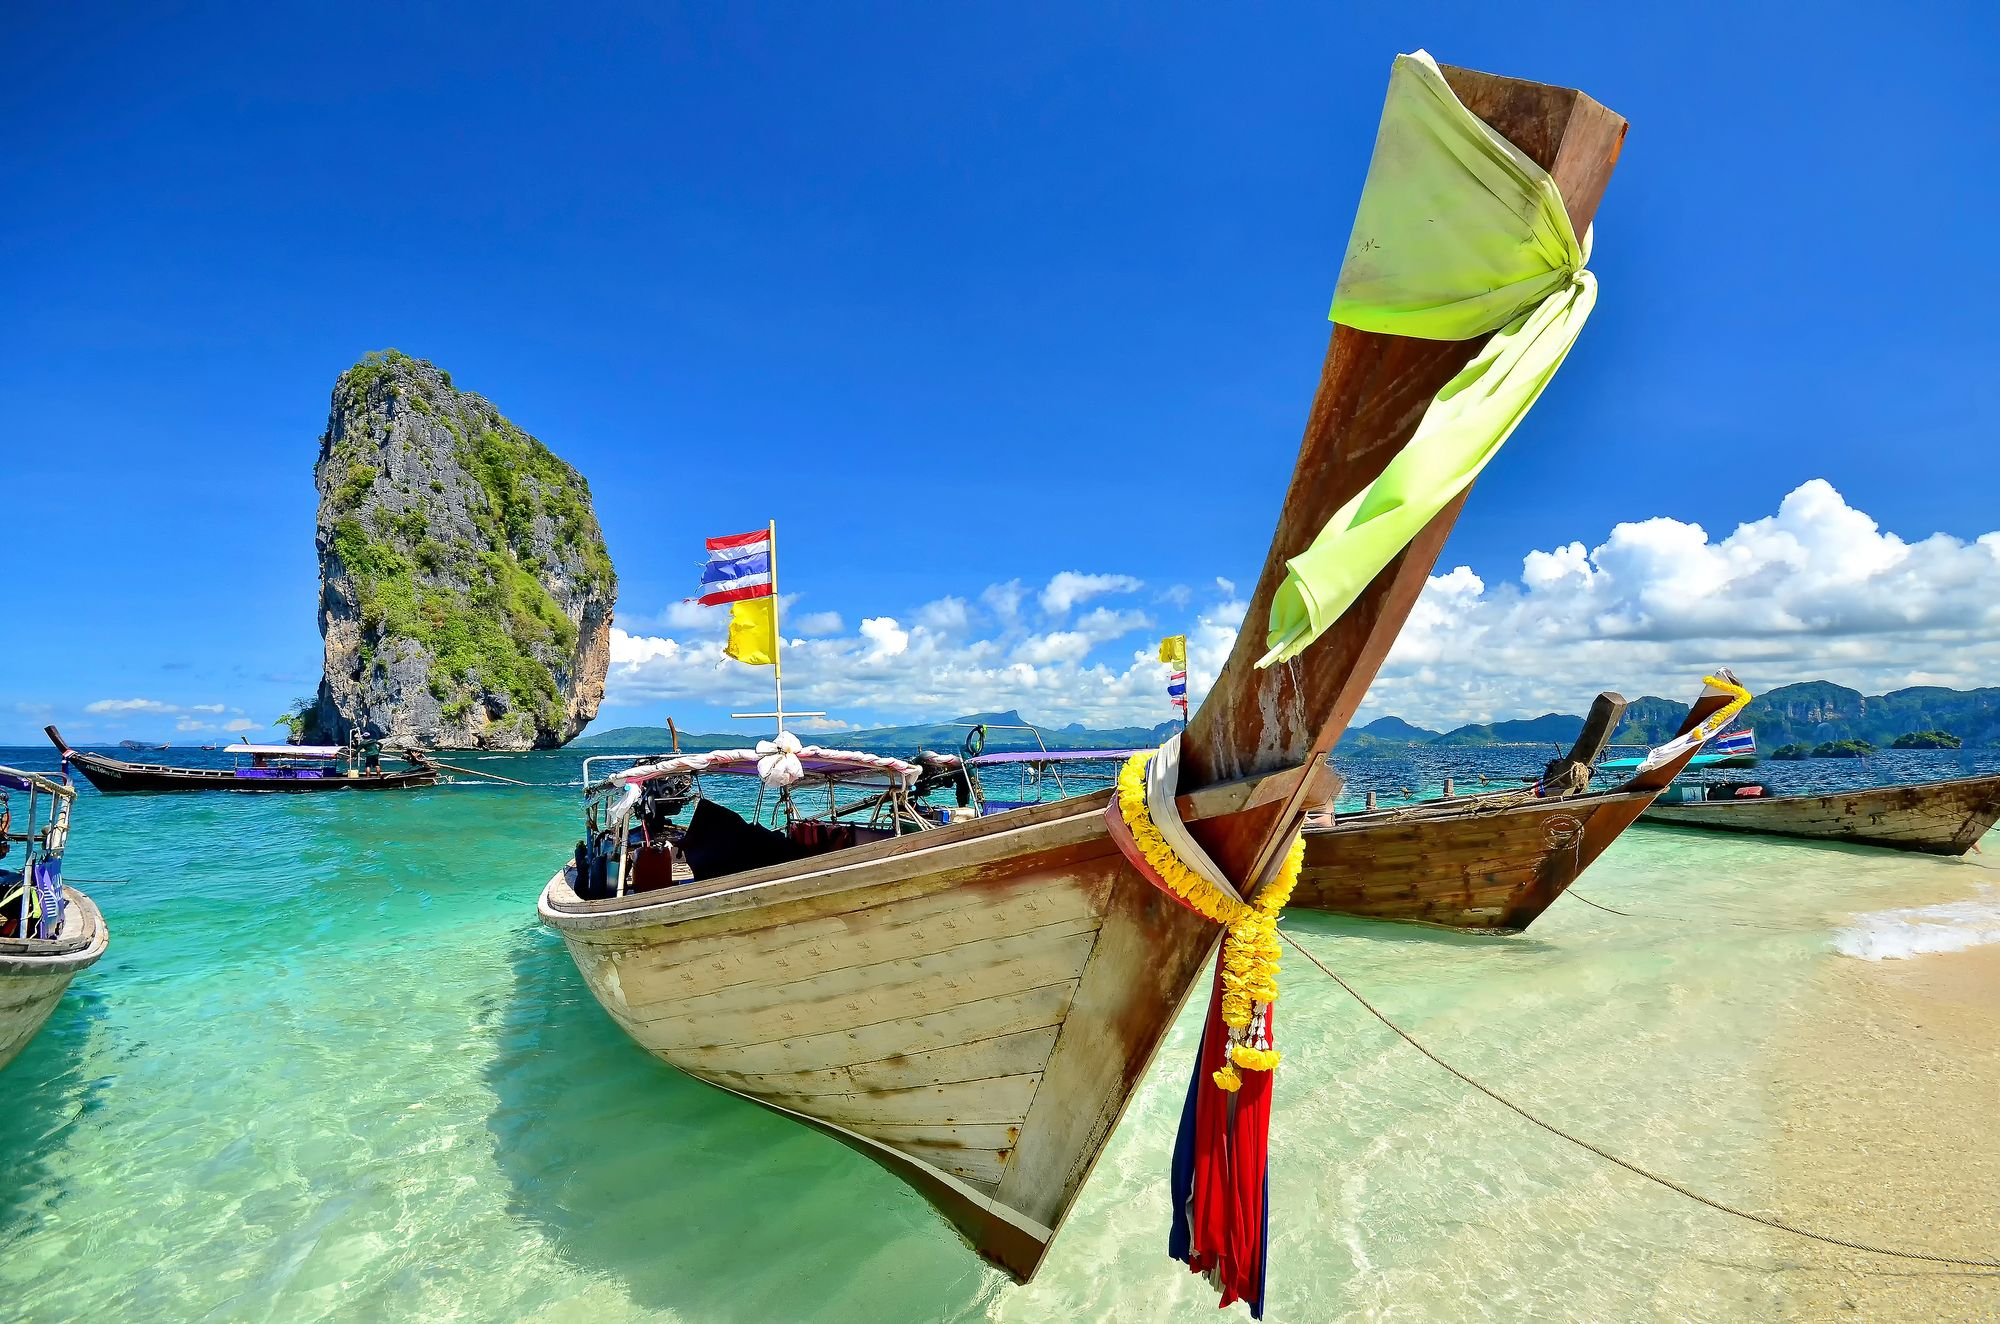 The famous boats of Thailand